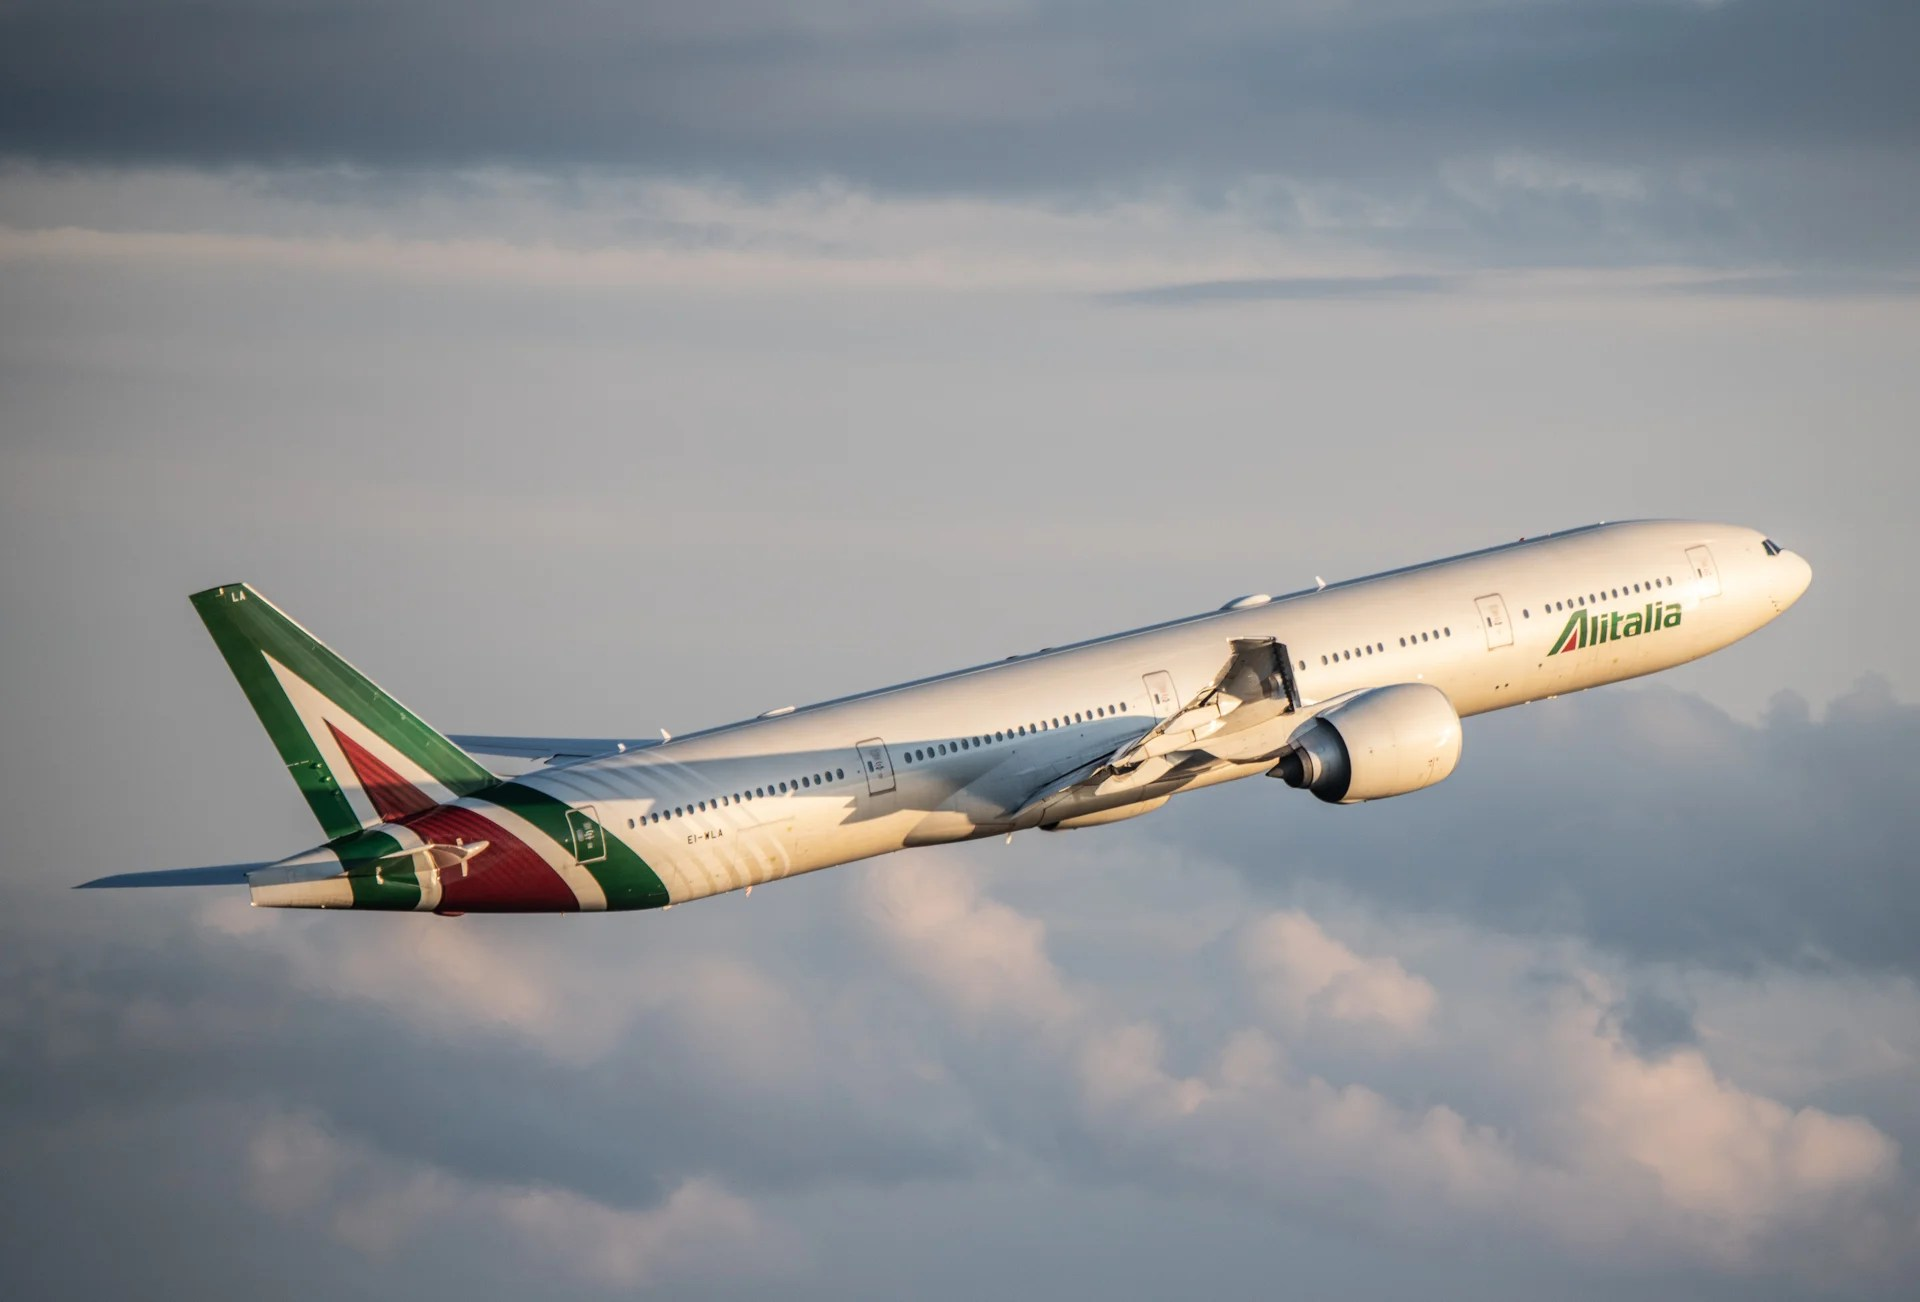 What You Need To Know About Alitalia's Basic Economy Fares